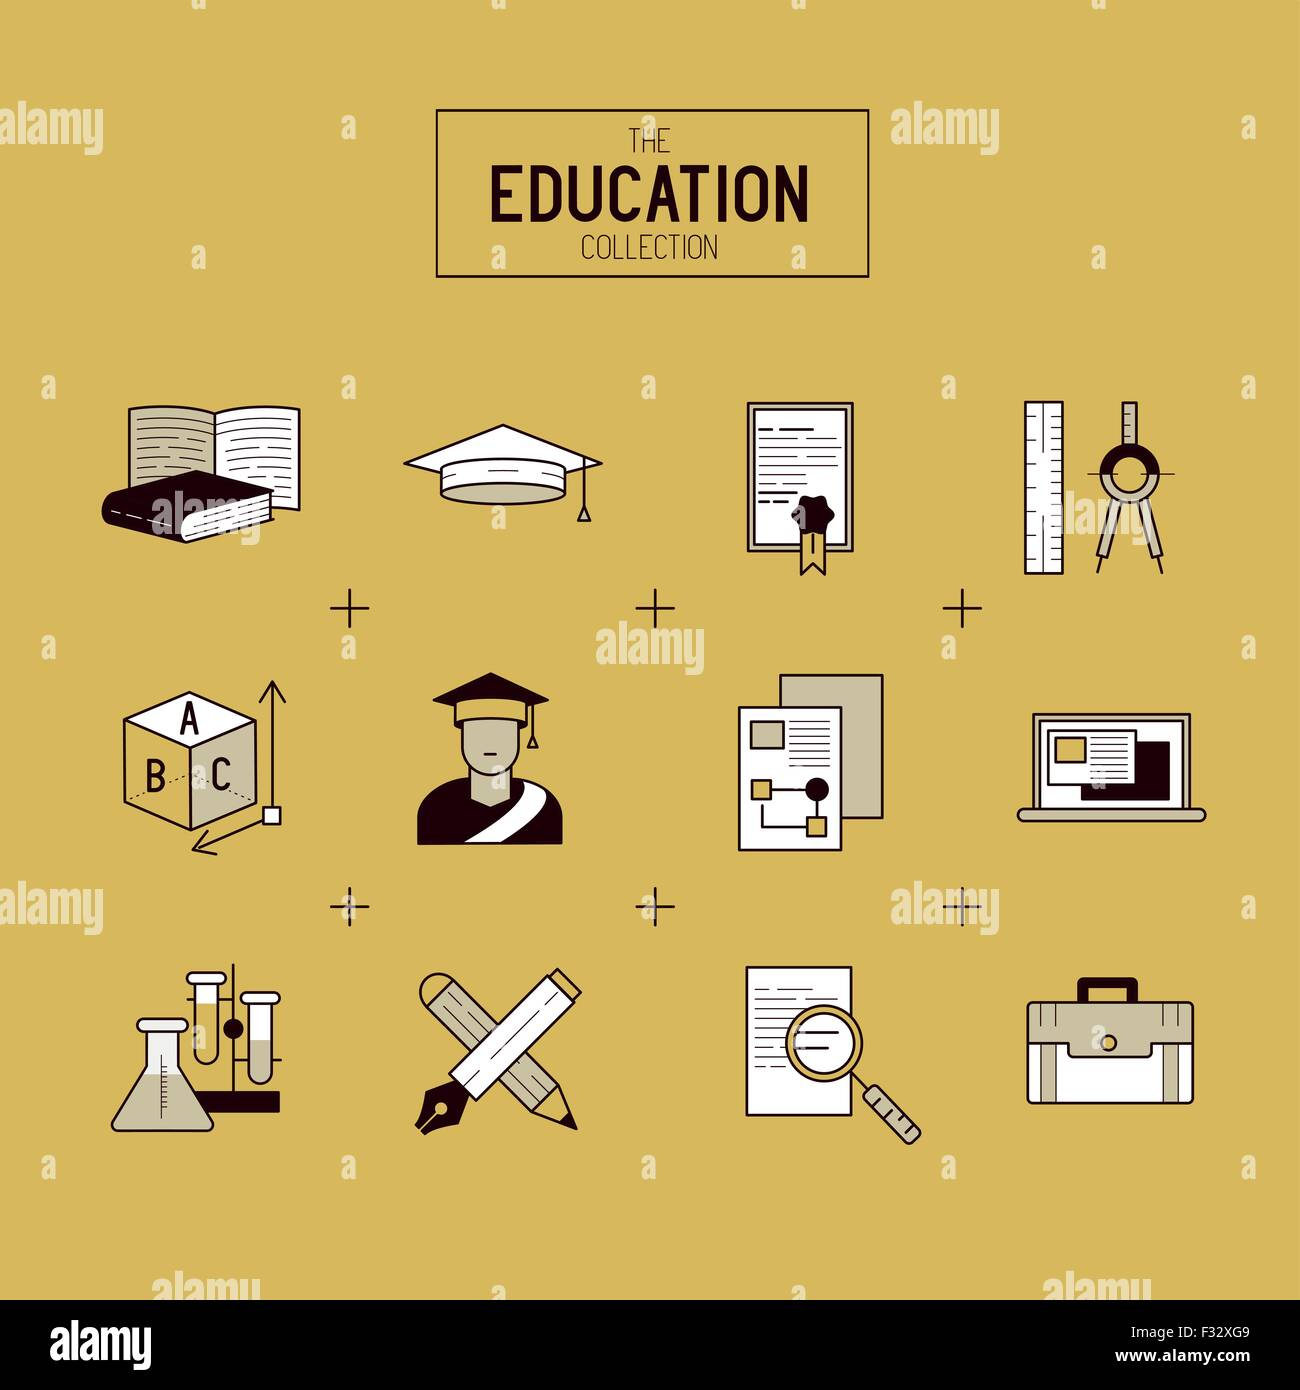 Education Vector Icon Set. a collection of gold study and research symbols including objects and tools. Vector illustration. Stock Vector